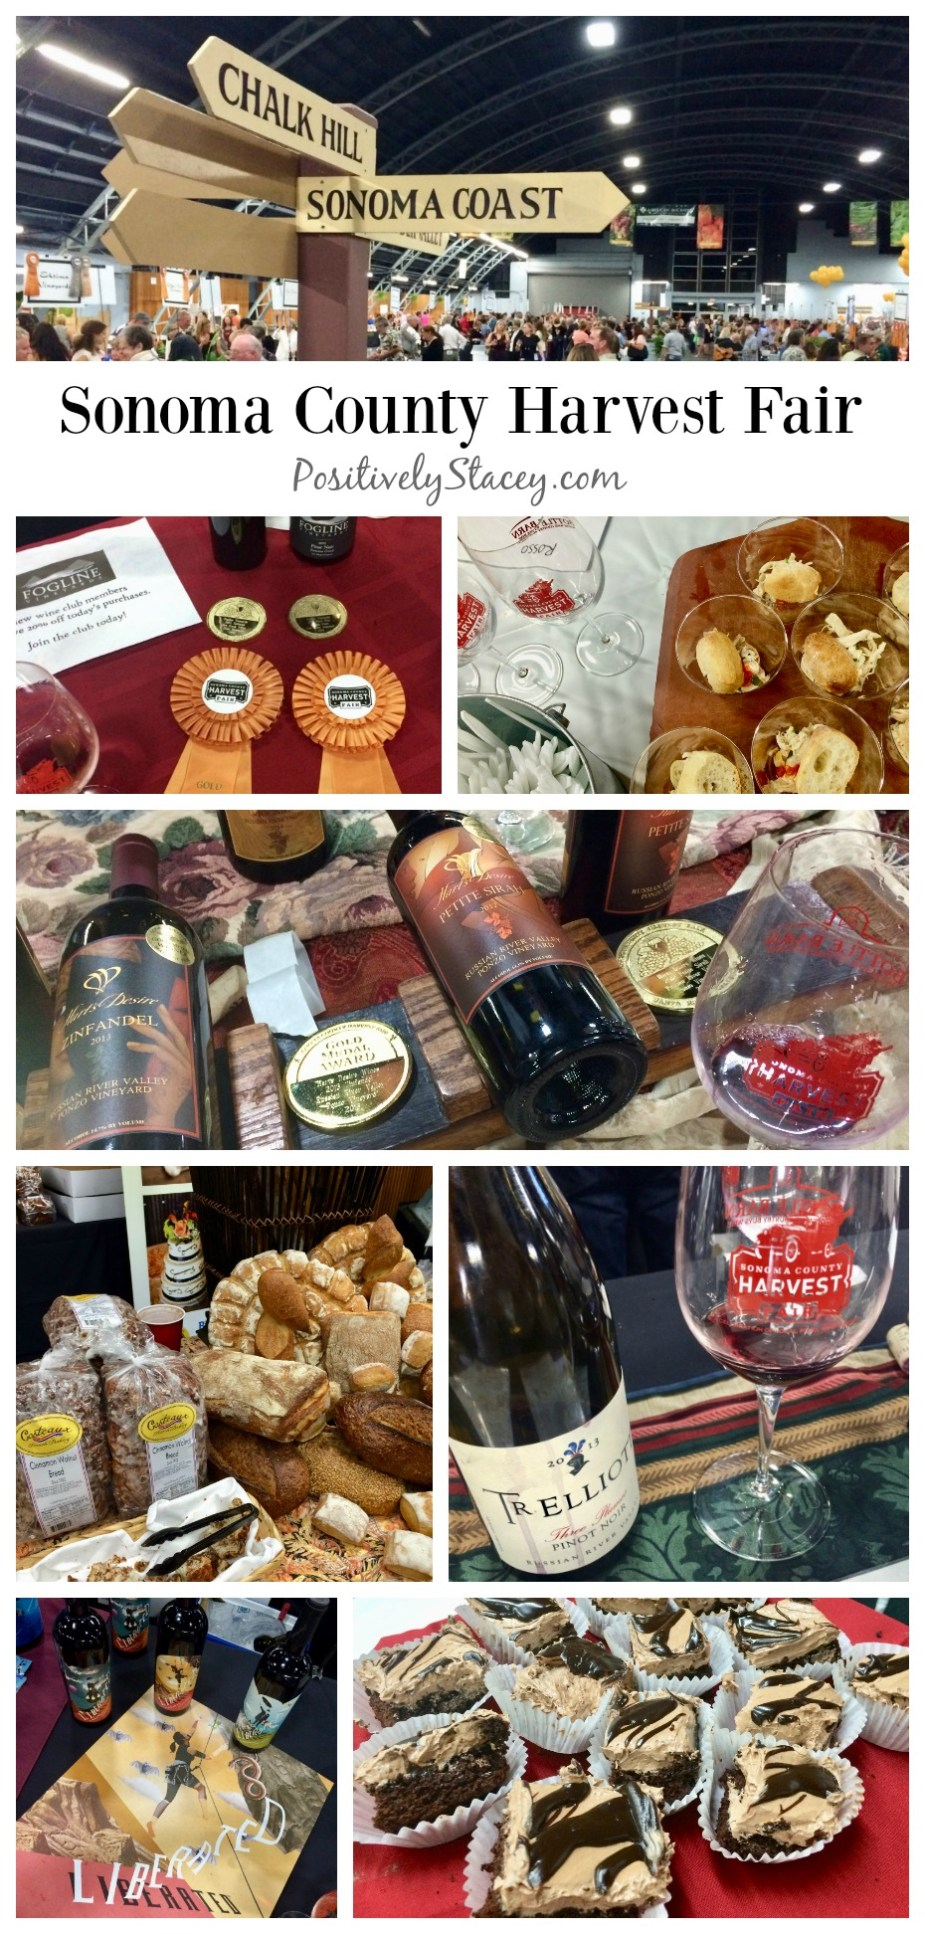 Enjoying the Sonoma County Harvest Fair and a Weekend of Wine Tasting